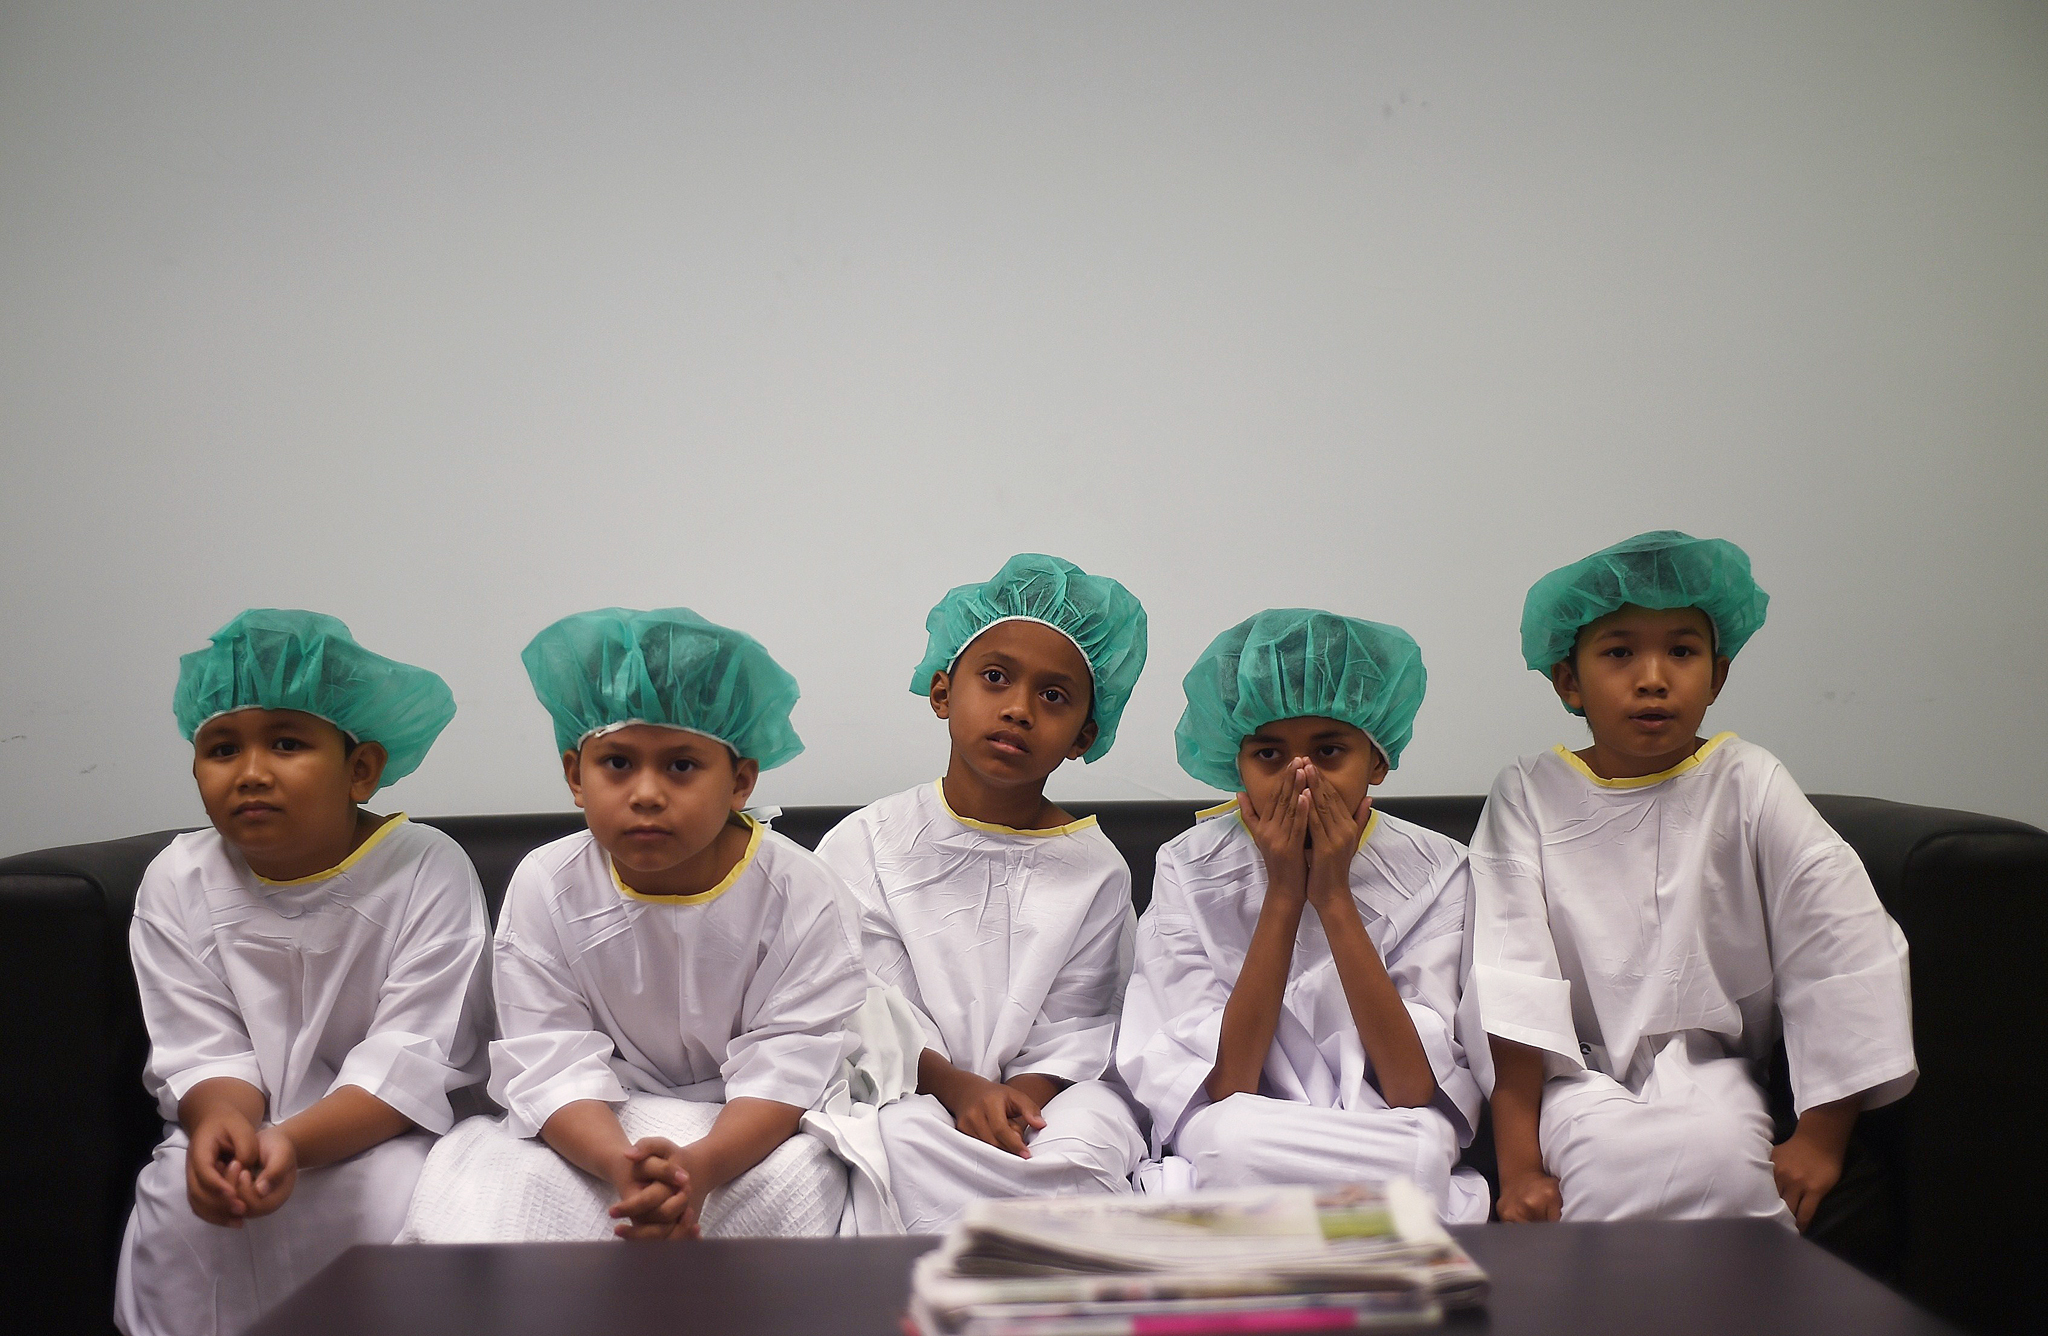 TOPSHOTS Malaysian boys wait for their t...TOPSHOTS Malaysian boys wait for their turn during a mass-circumcision ceremony at the Tuanku Mizan Army hospital in Kuala Lumpur on December 5, 2014. 112 children participated in the event organised by the Ministry of Defence for children of defence personnel, with a grand welcome and festivity, which some consider as a celebration of reaching manhood.   AFP PHOTO / MANAN VATSYAYANAMANAN VATSYAYANA/AFP/Getty Images